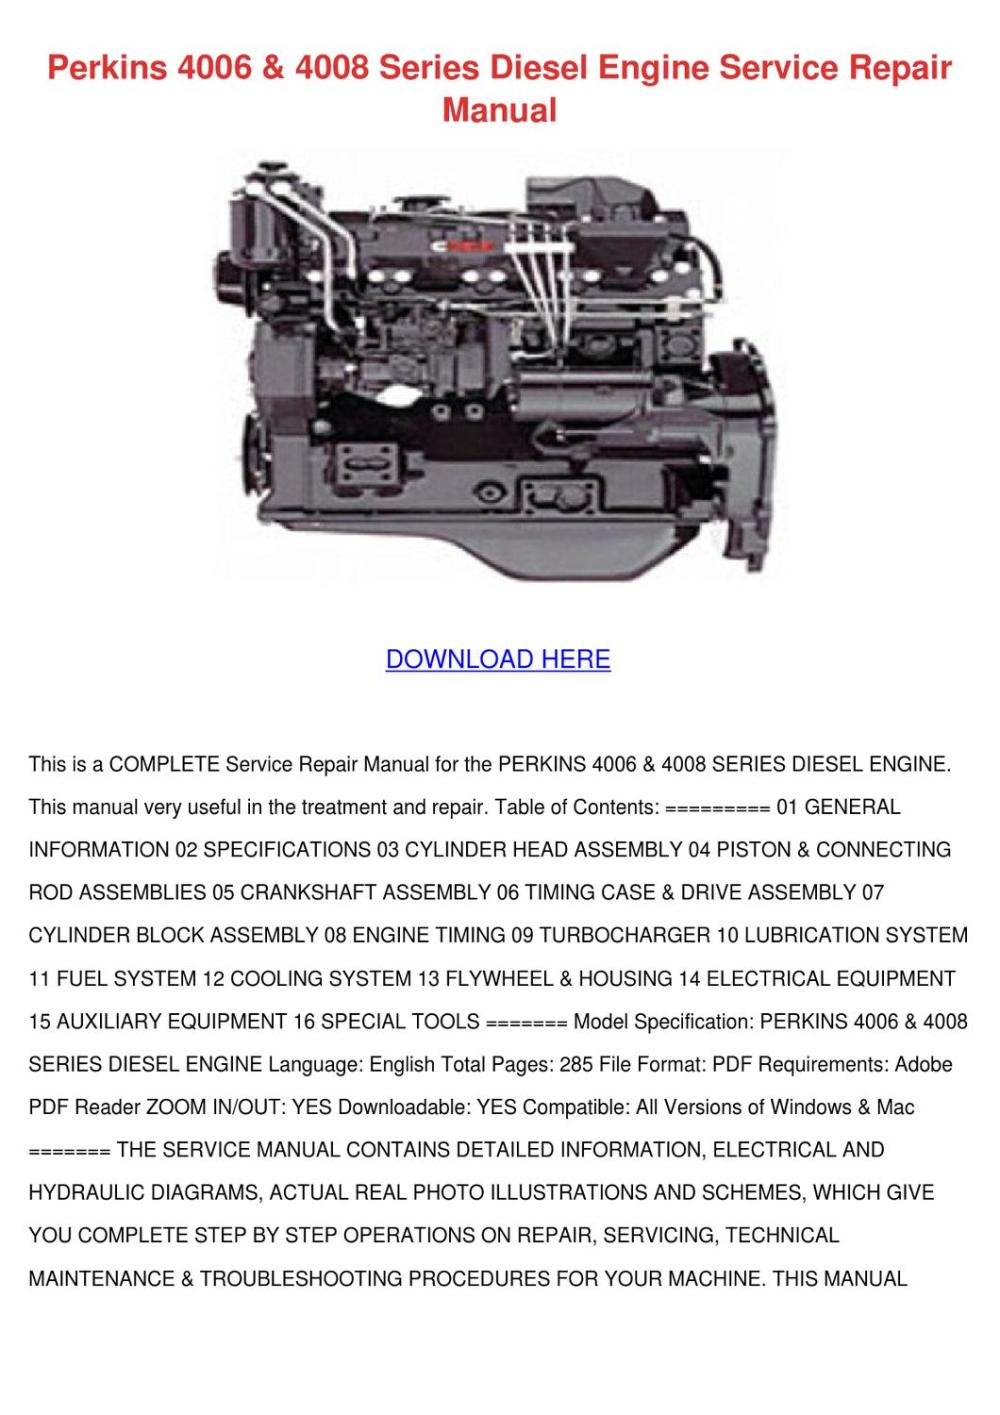 medium resolution of perkins diesel engine fuel diagrams ruud urgg wiring diagram perkins diesel engine identification 4 cylinder perkins